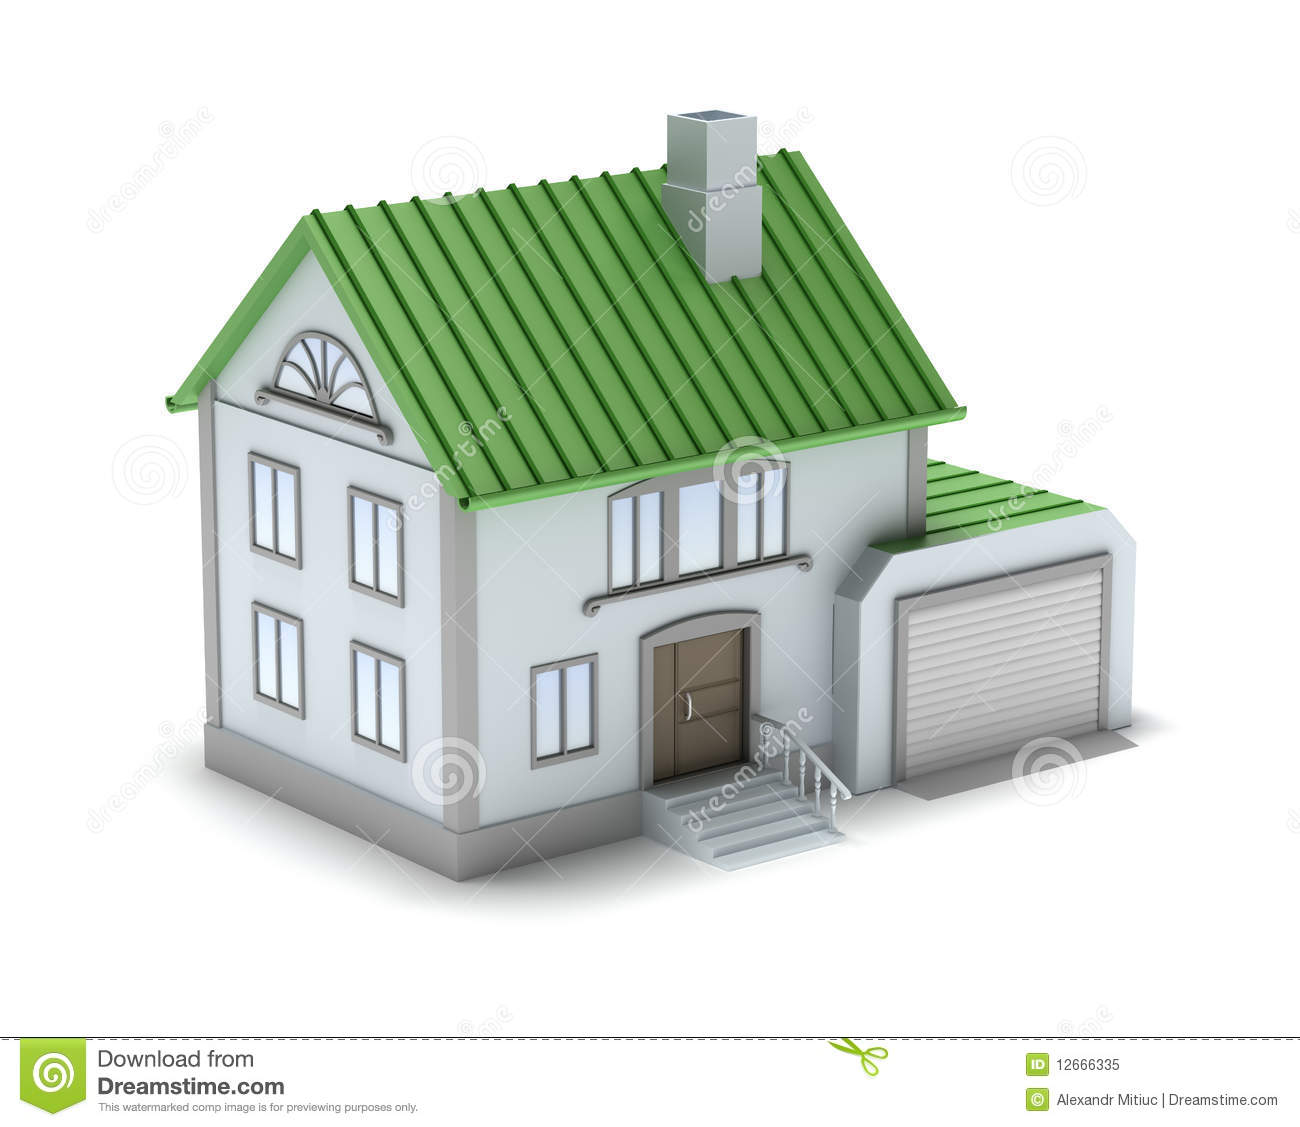 Penny háza Small-family-house-3d-image-isolated-white-12666335